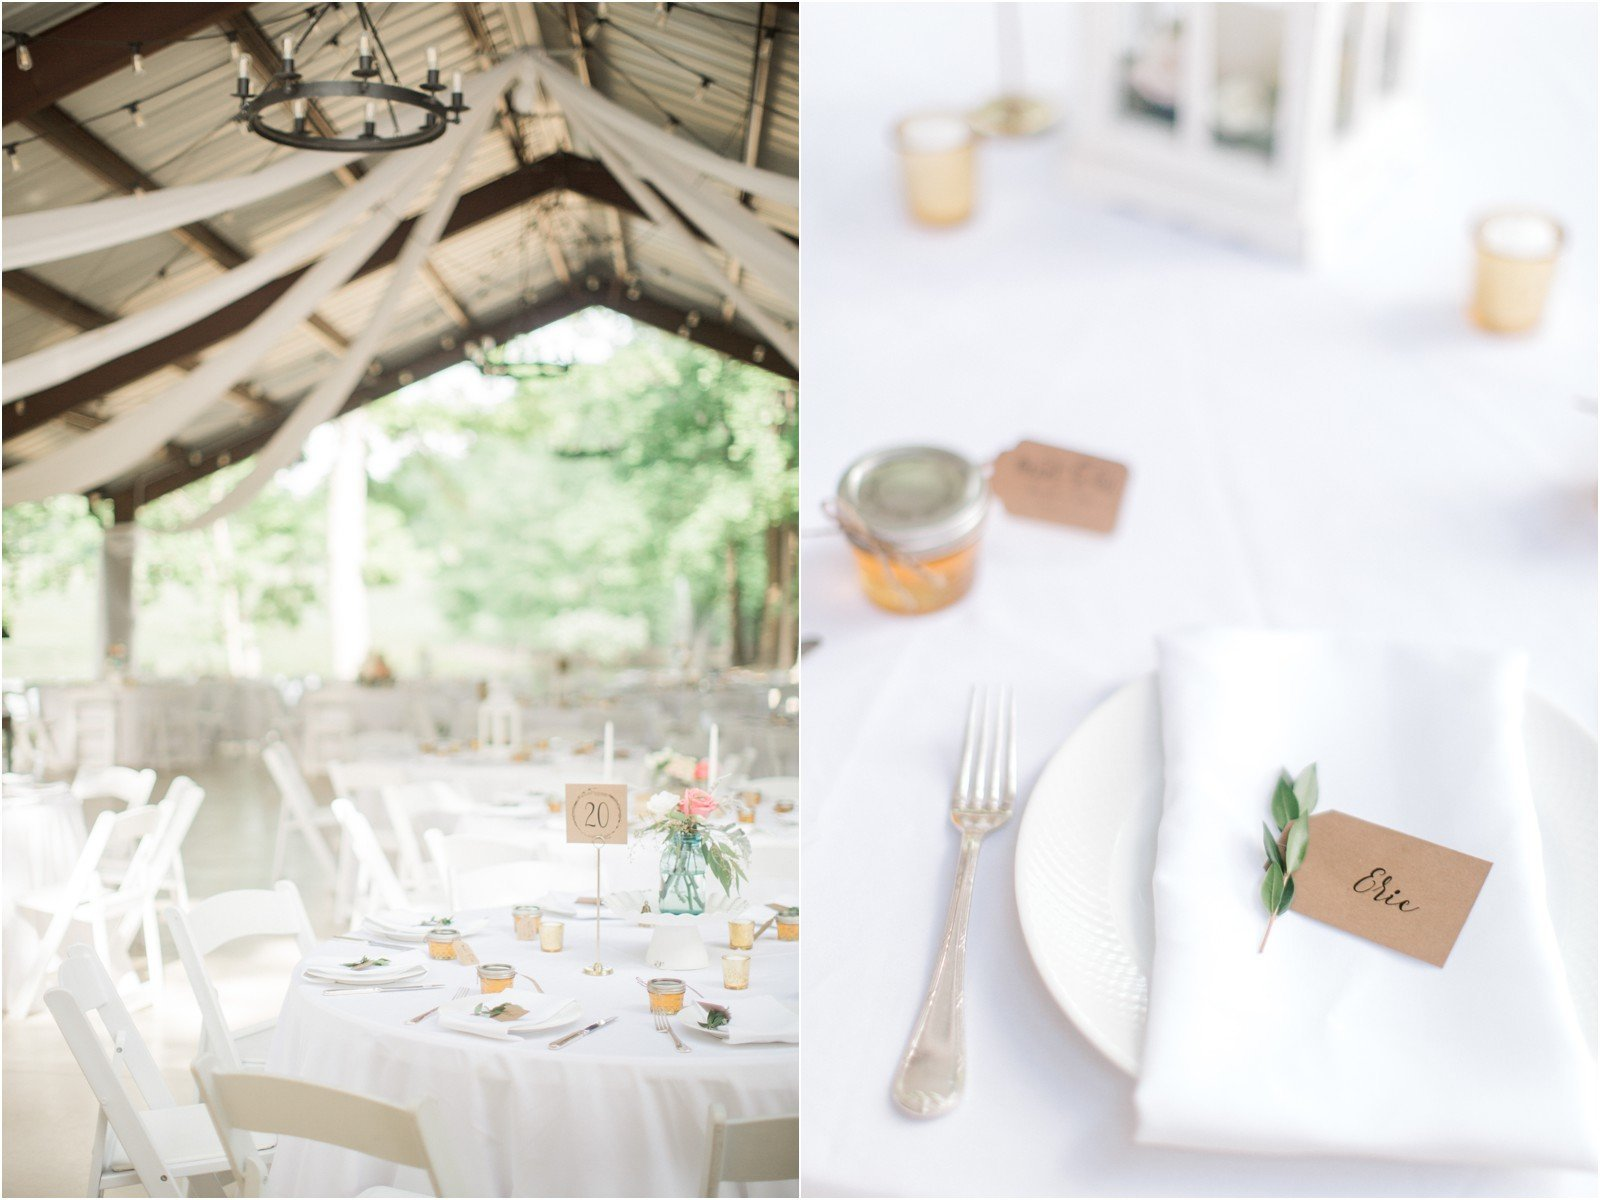 Chapel in the Woods Rustic Country Vintage Wedding Raleigh NC Plume Events Andrew & Tianna Photography-14